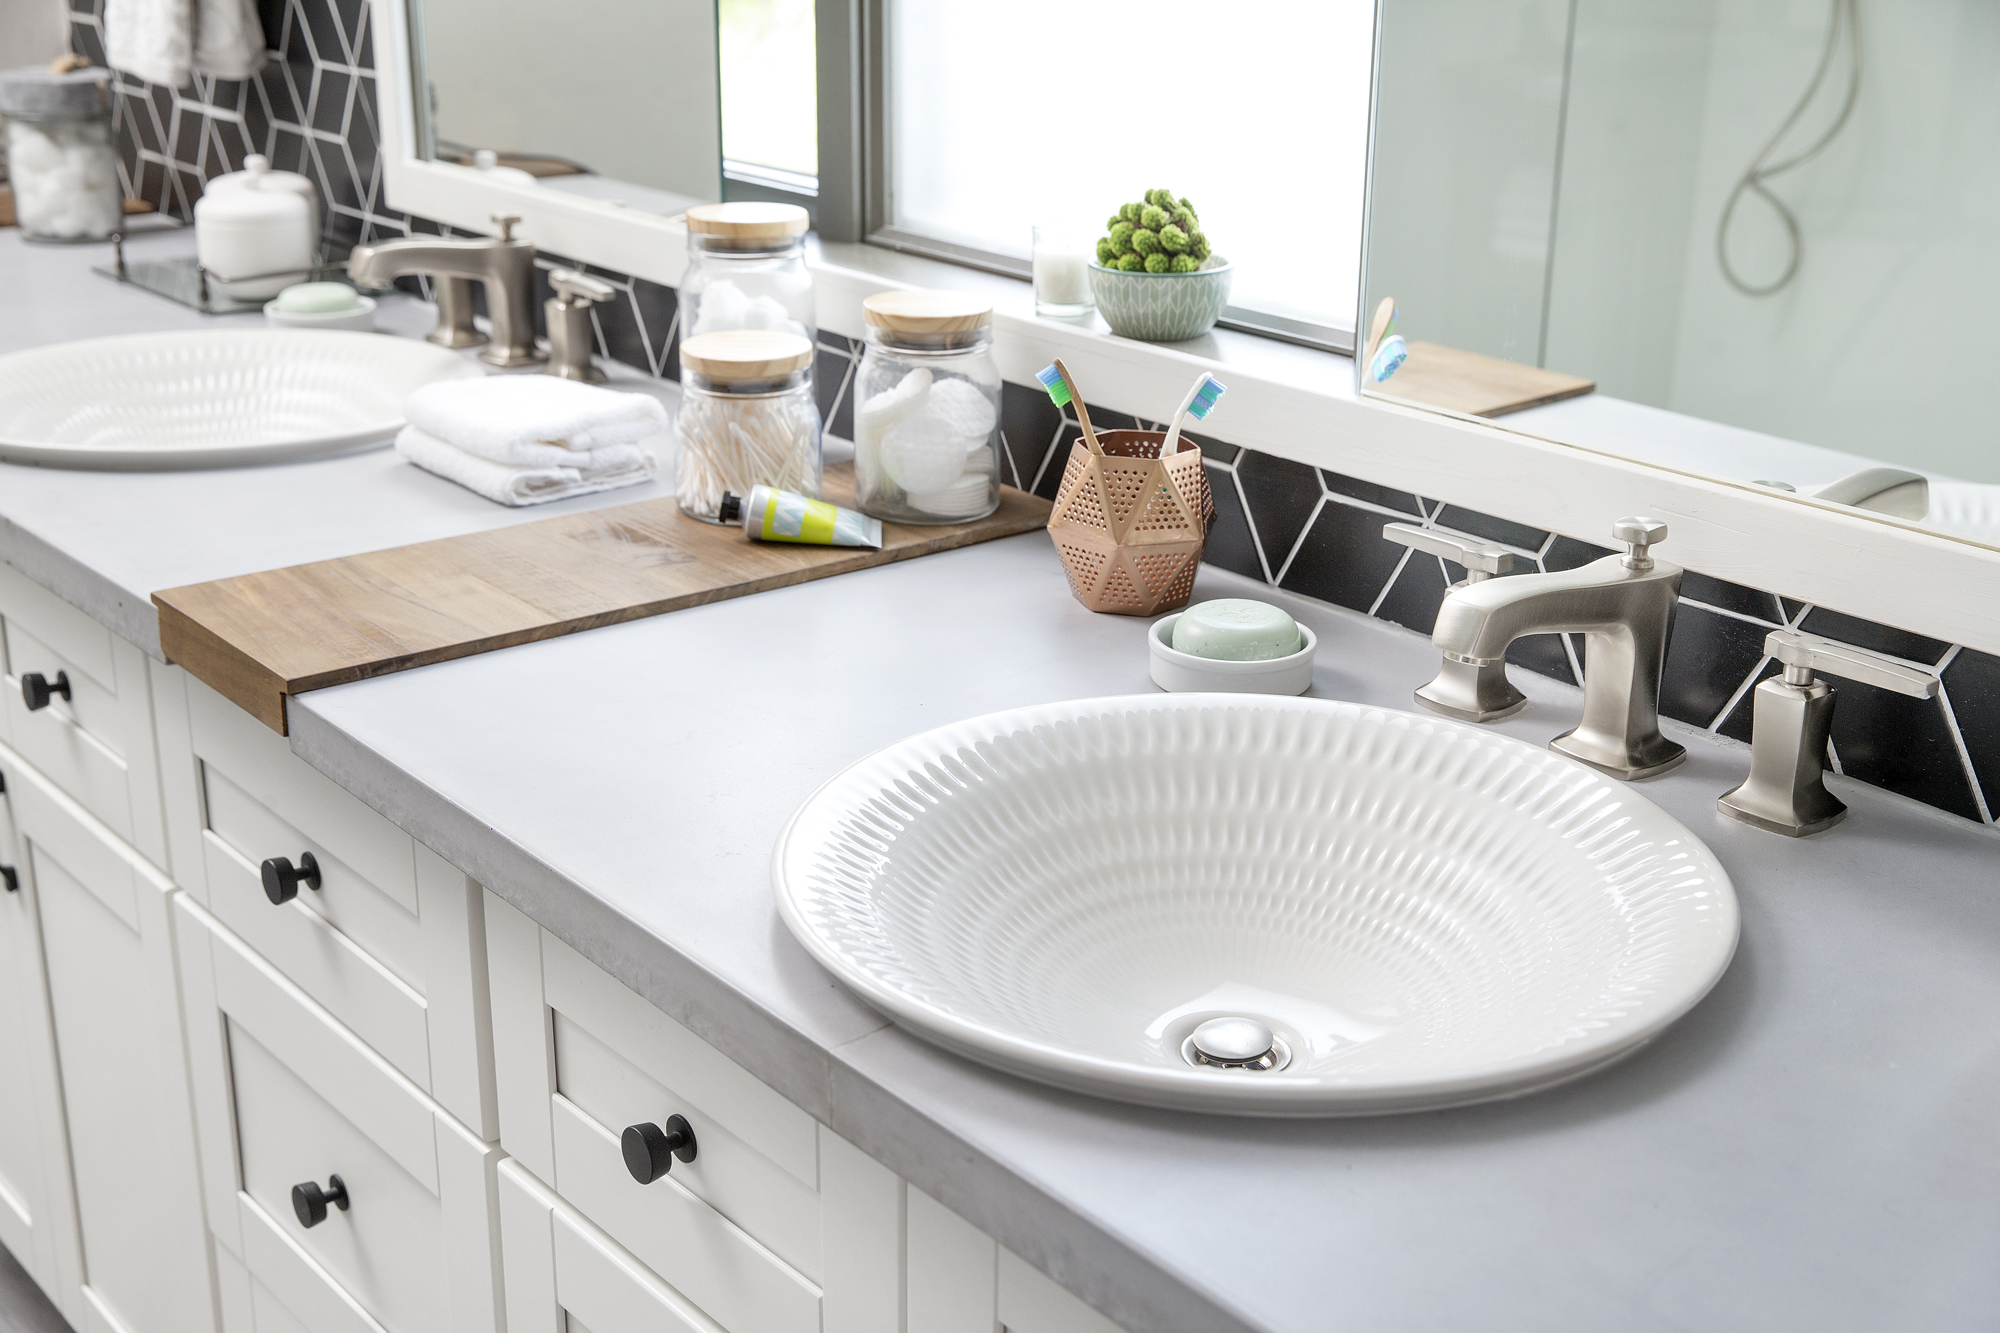 Margaux® faucet   Derring® sink     With a hand-carved texture that accentuates tonal variations in the glaze, side-by-side sinks in soft white give the master bath its organic, polished elegance.